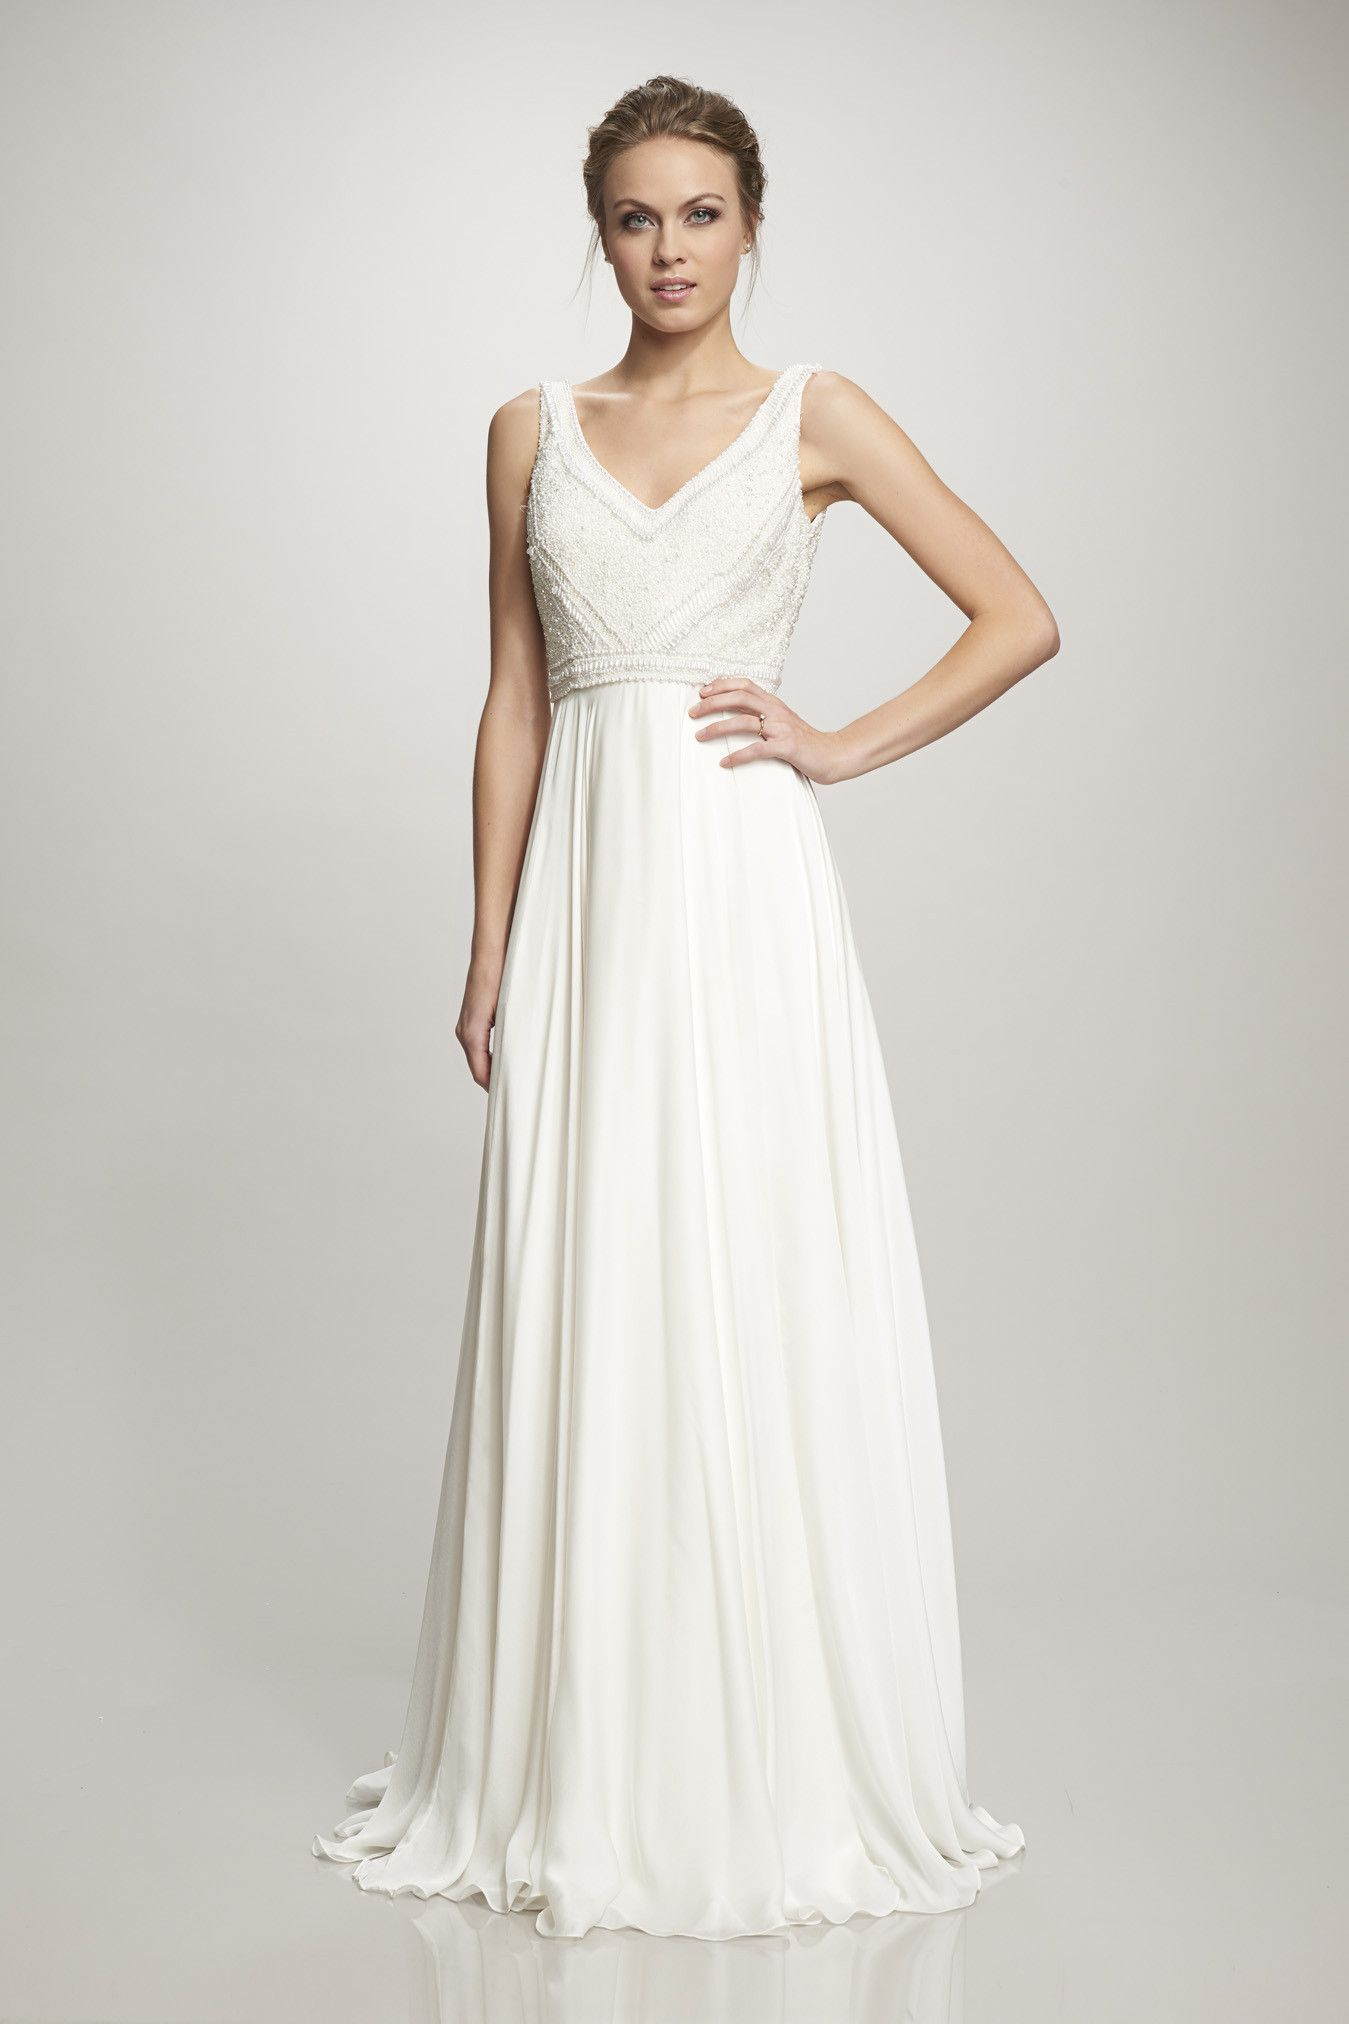 Ivory satin faced silk wedding dress with hand